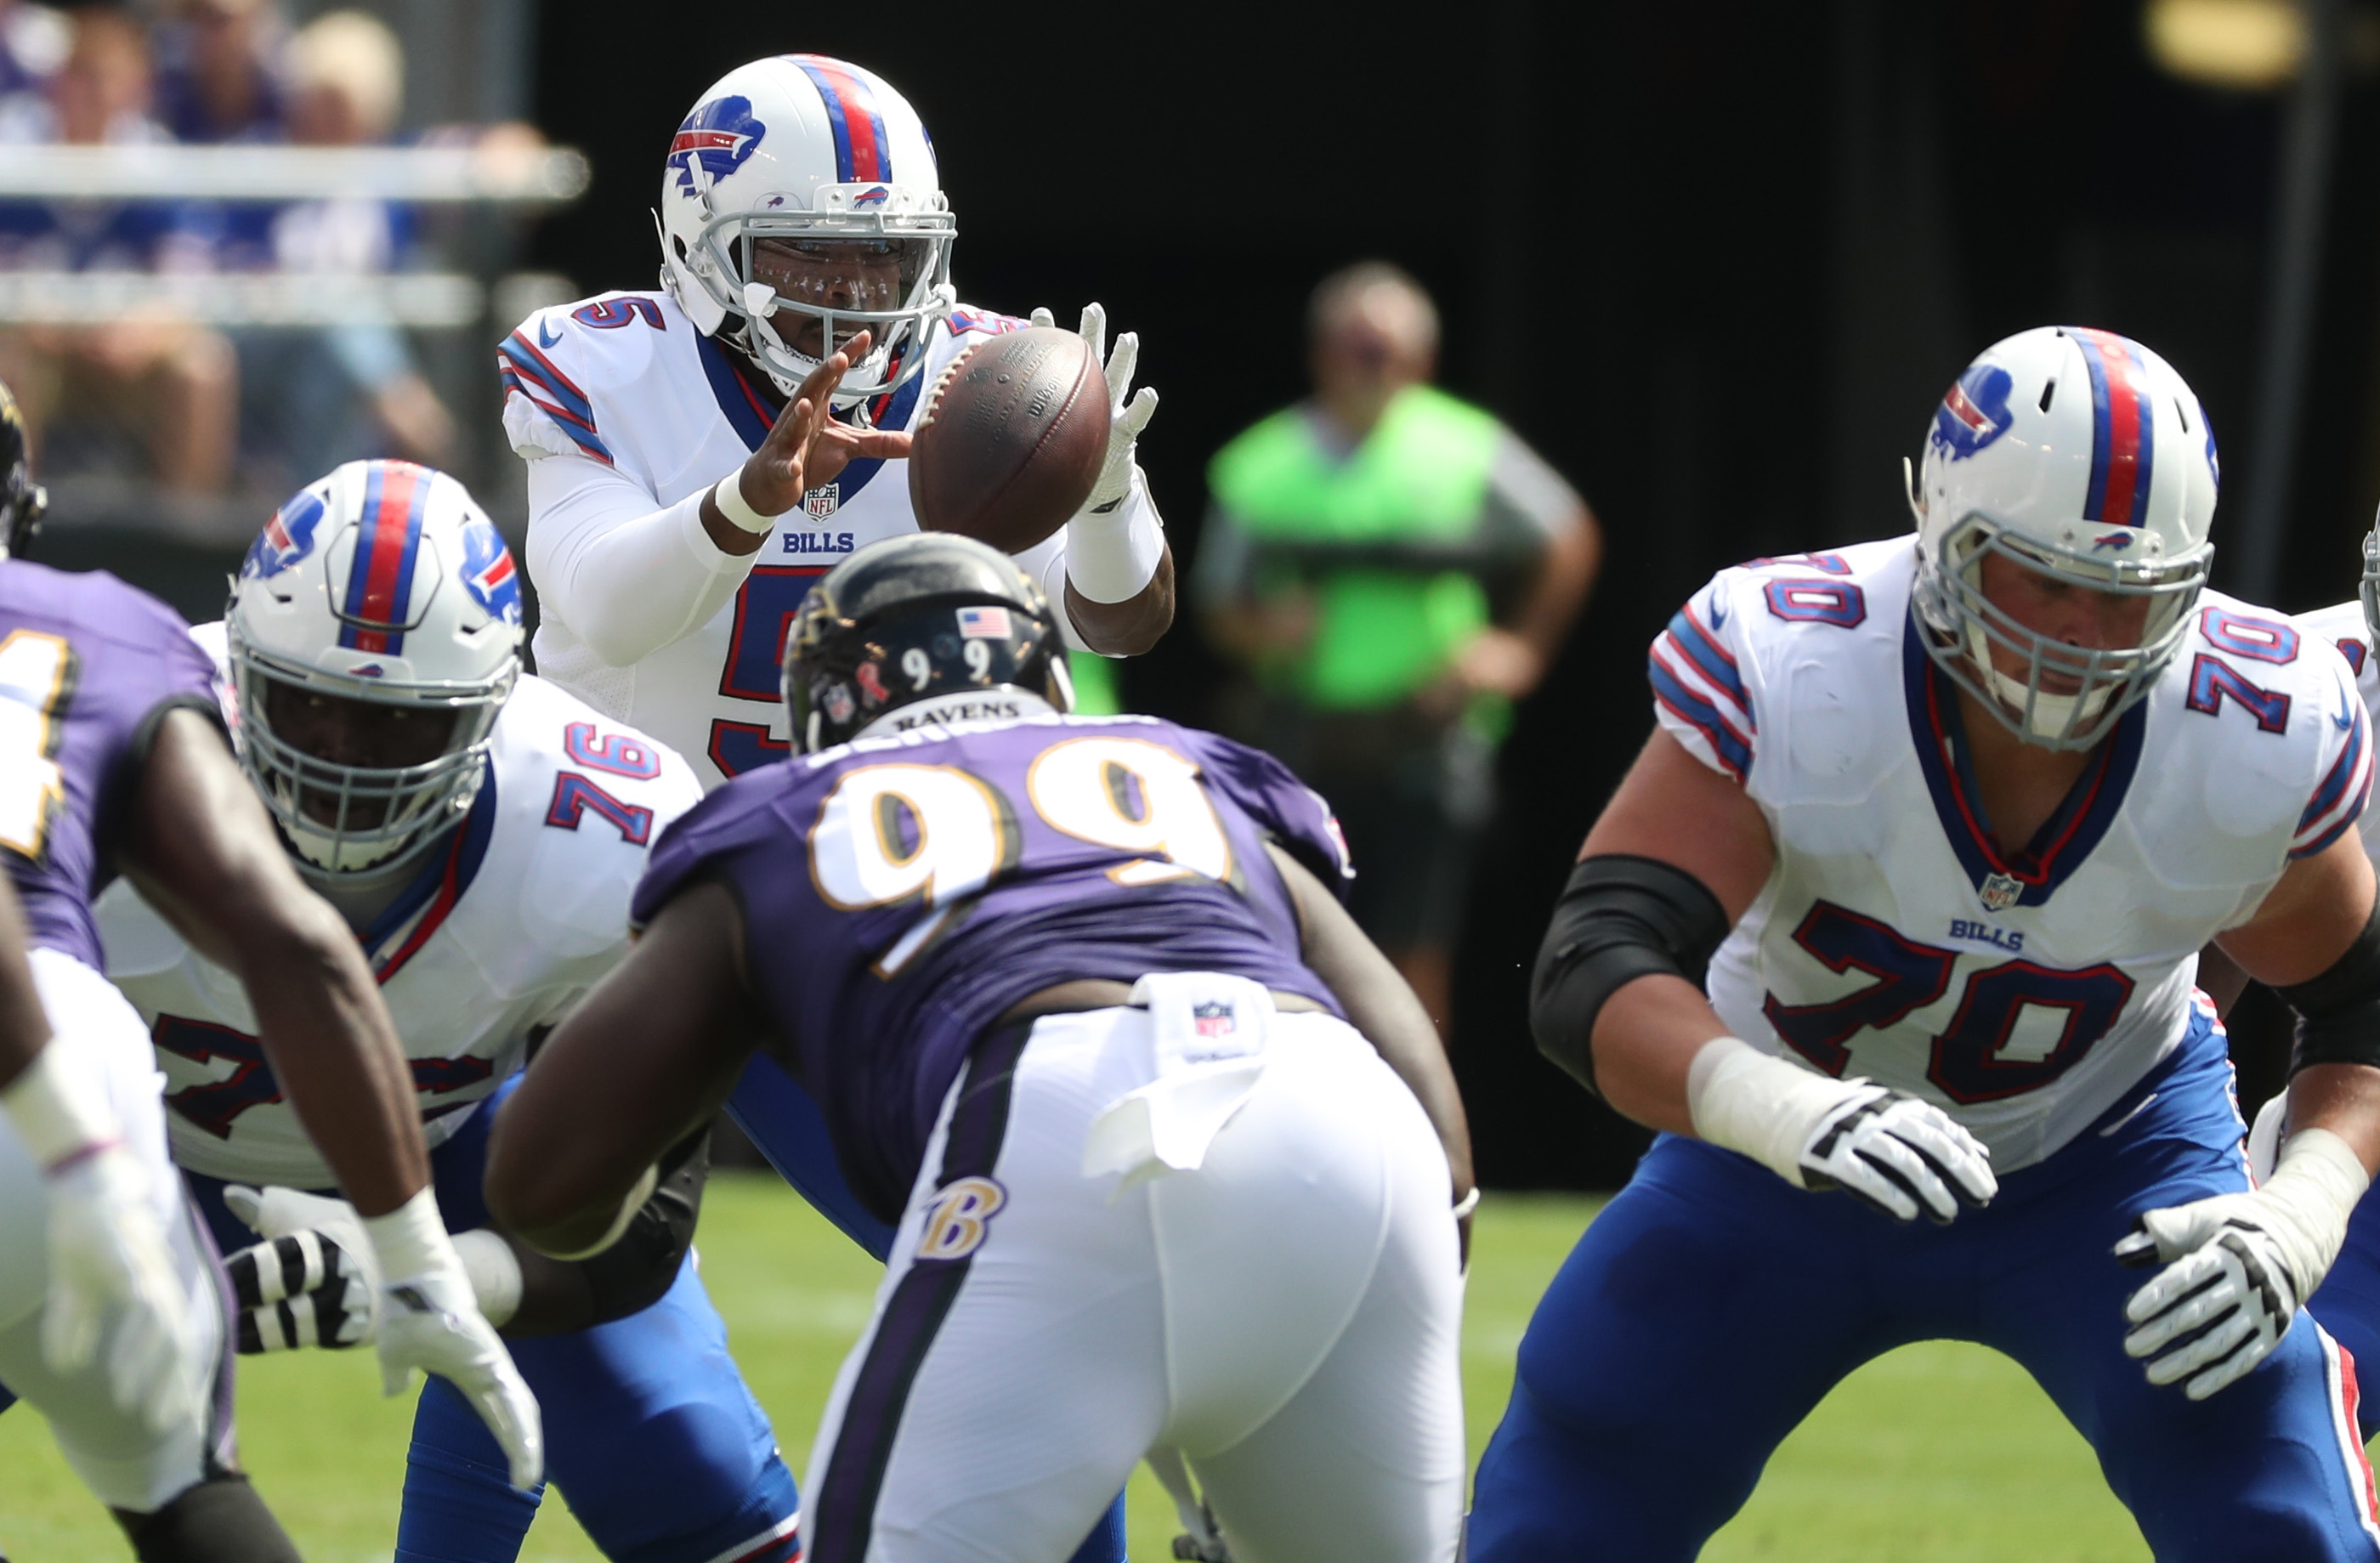 Buffalo Bills quarterback Tyrod Taylor was bottled up by the Ravens.